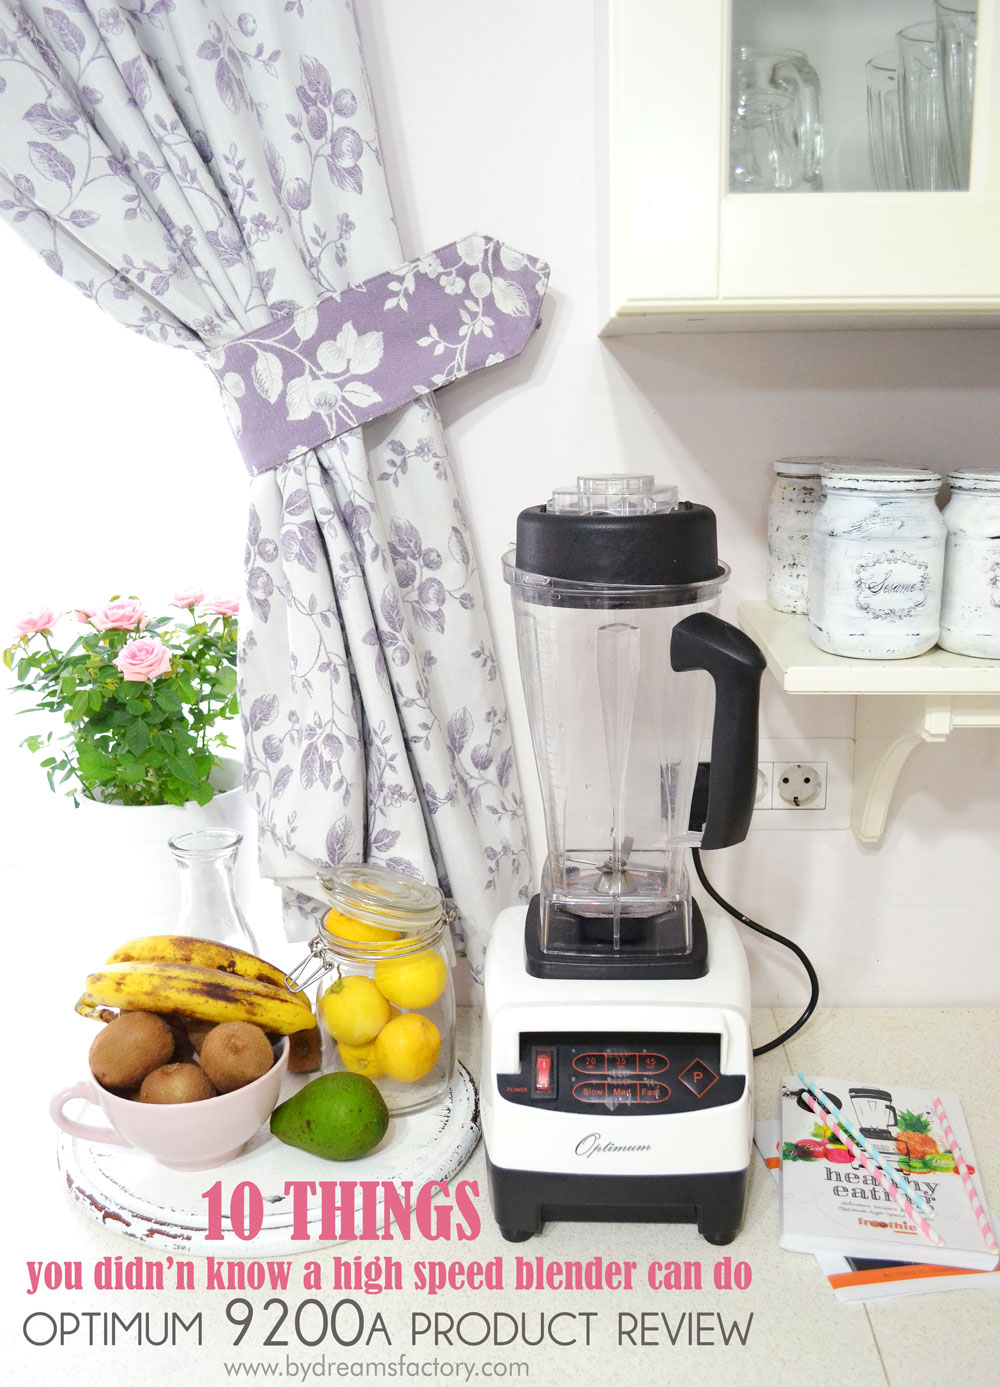 10 things you didn't know a high speed blender can do - Optimum 9200A review